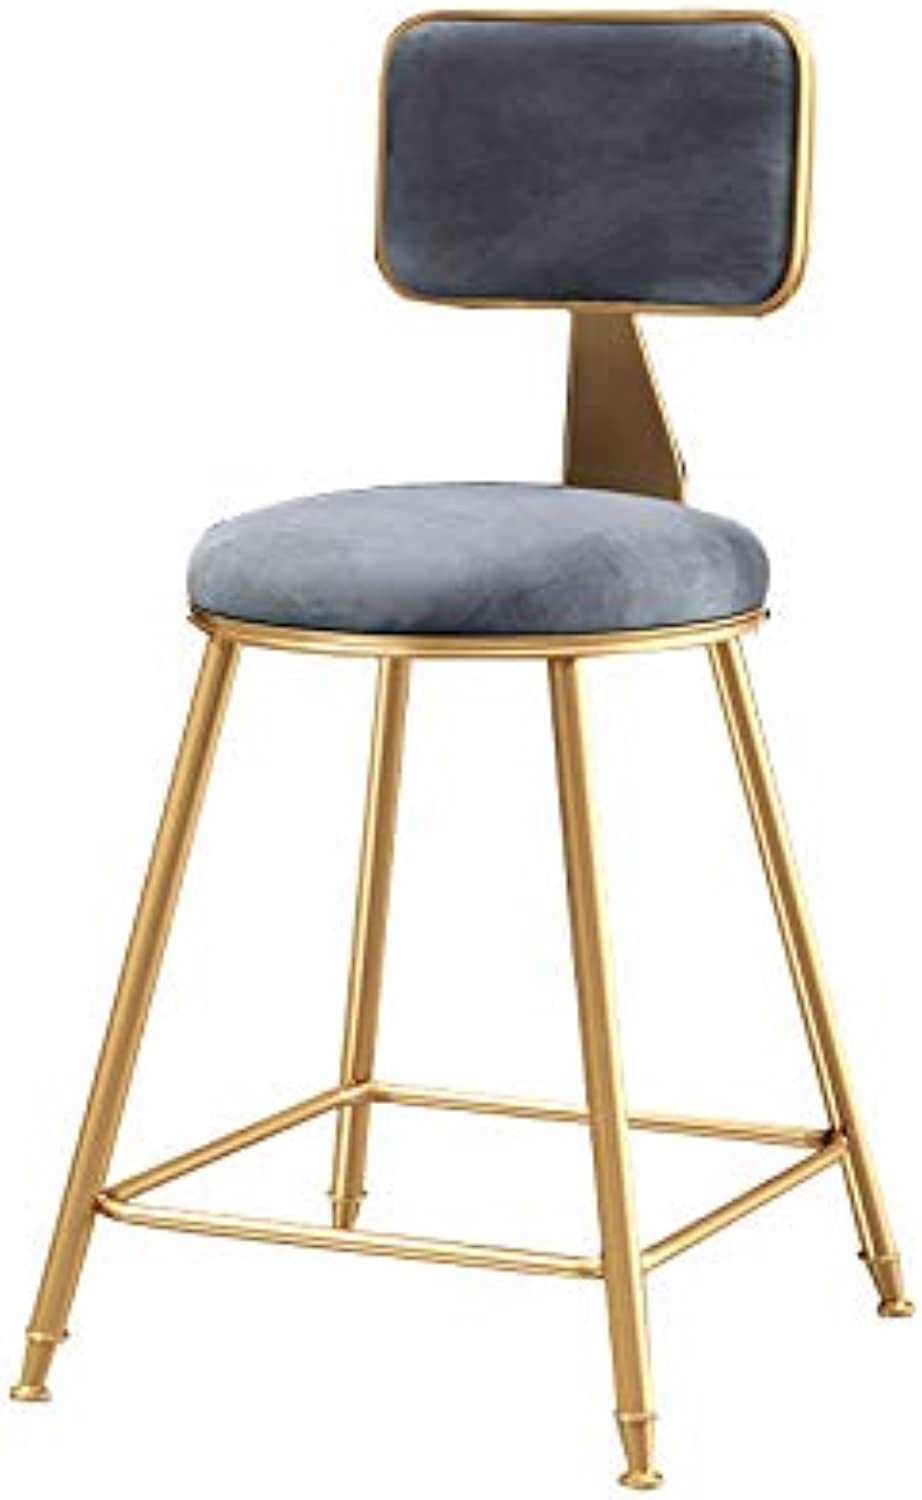 MEIDUO Bar stools Bar Stools,Bar Chair with Backrest Kitchen Pub Counter Chair Velvet Cushion Kitchen Breakfast Barstool 3 Height (Size   45cm -18 )